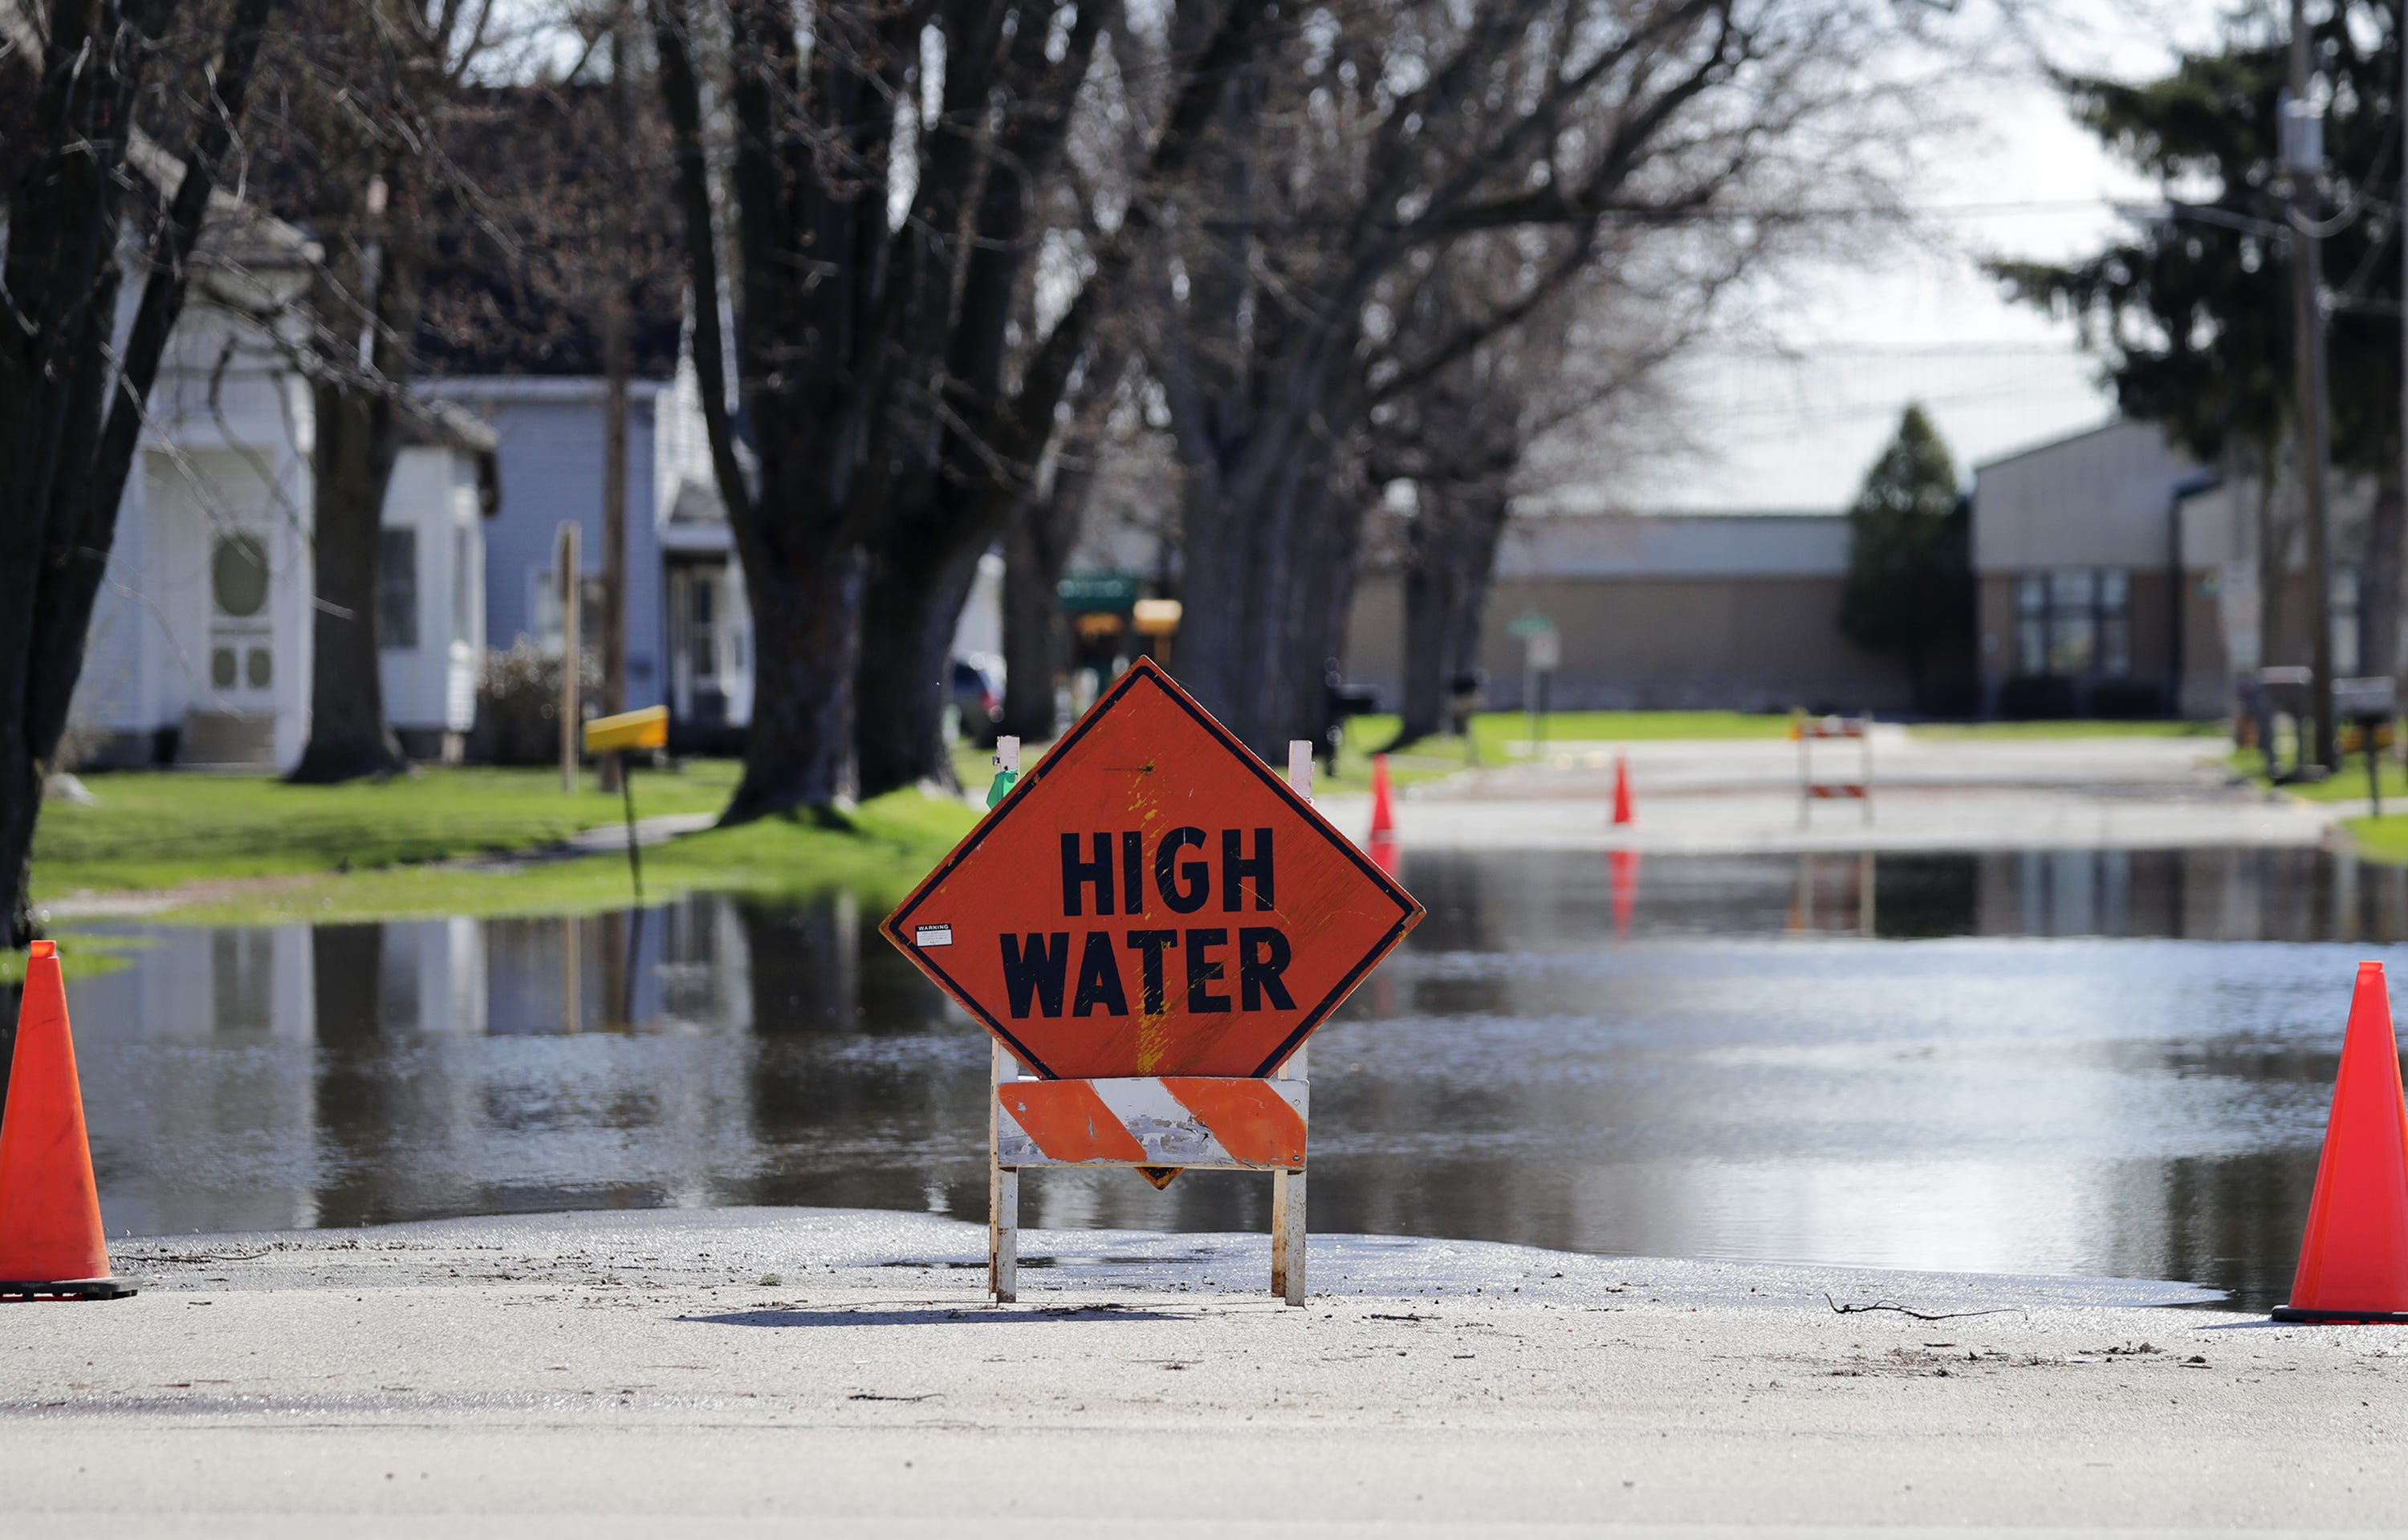 La Niña could bring 'roller coaster' weather across Wisconsin this spring as high water levels could bring coastal flooding in some areas